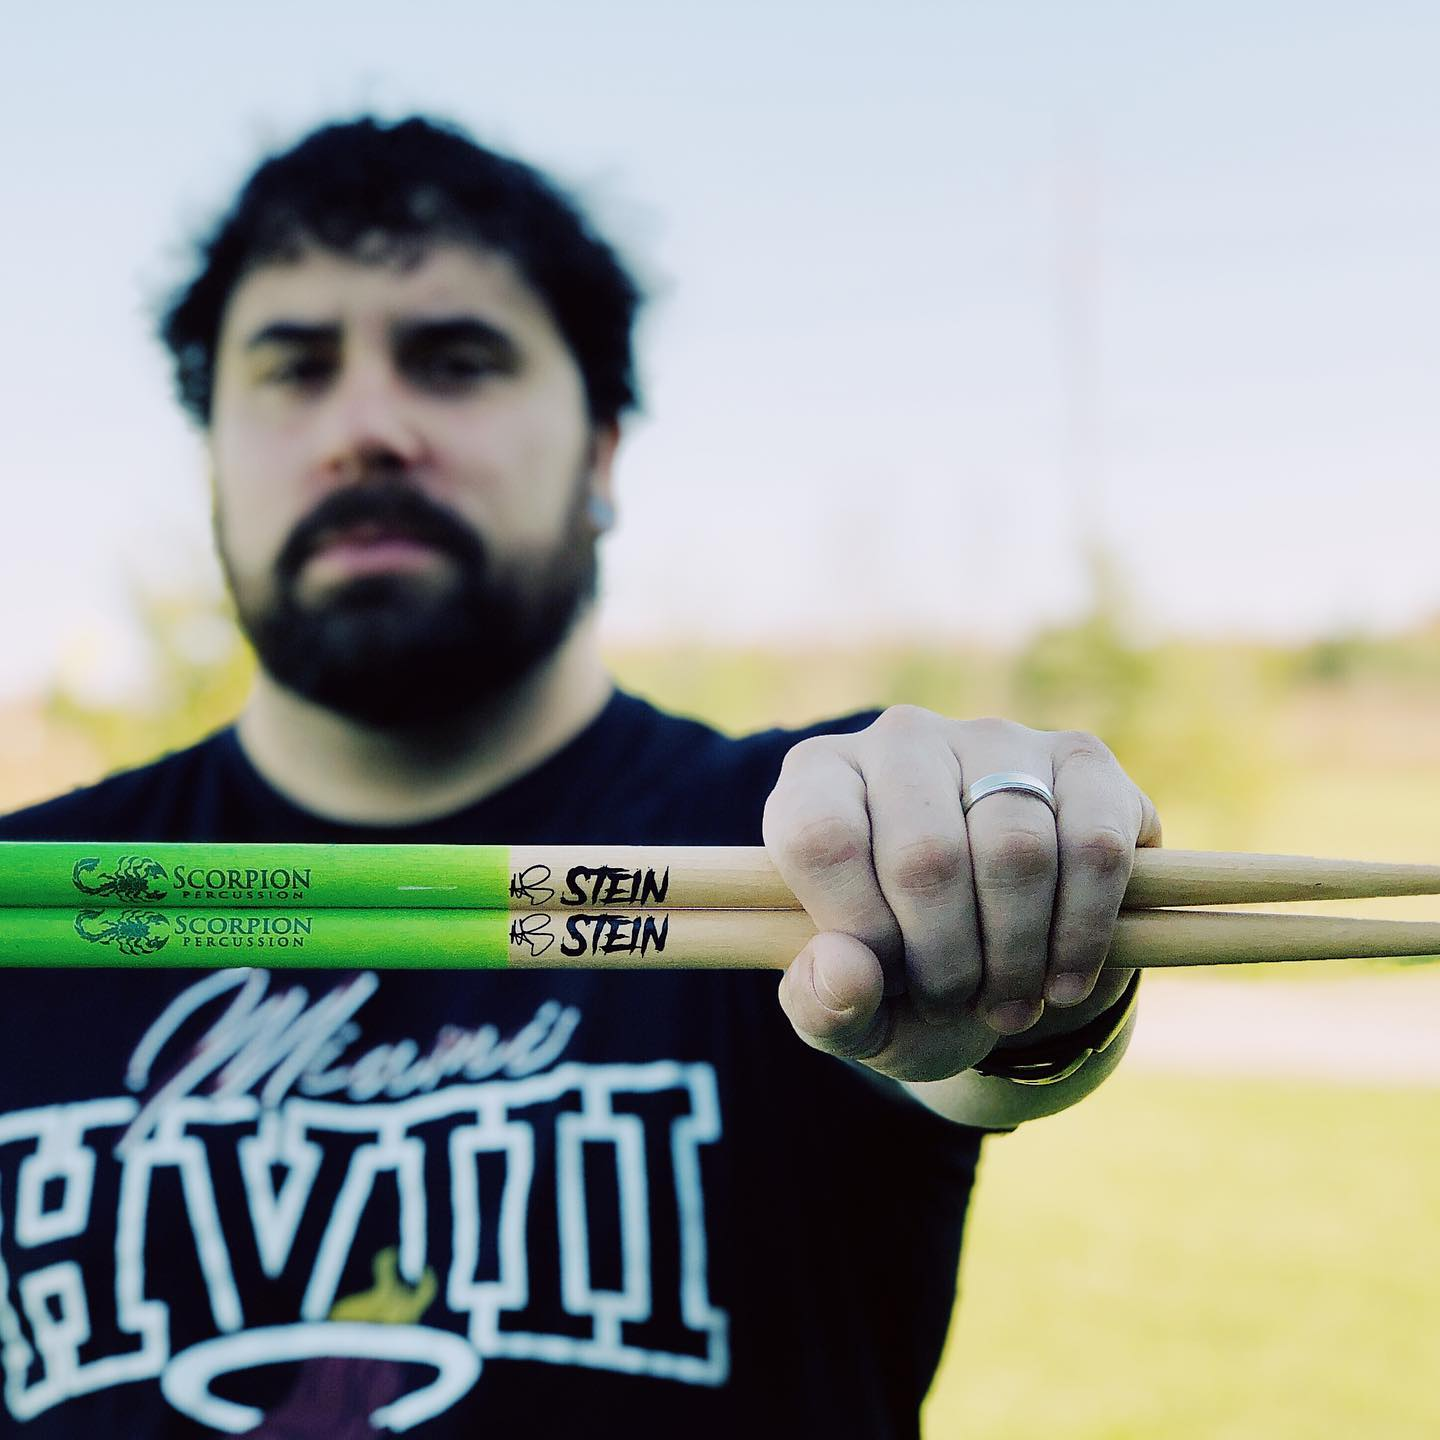 Drummer Matt Stein poses with Scorpion Percussion drumsticks behind his drumkit